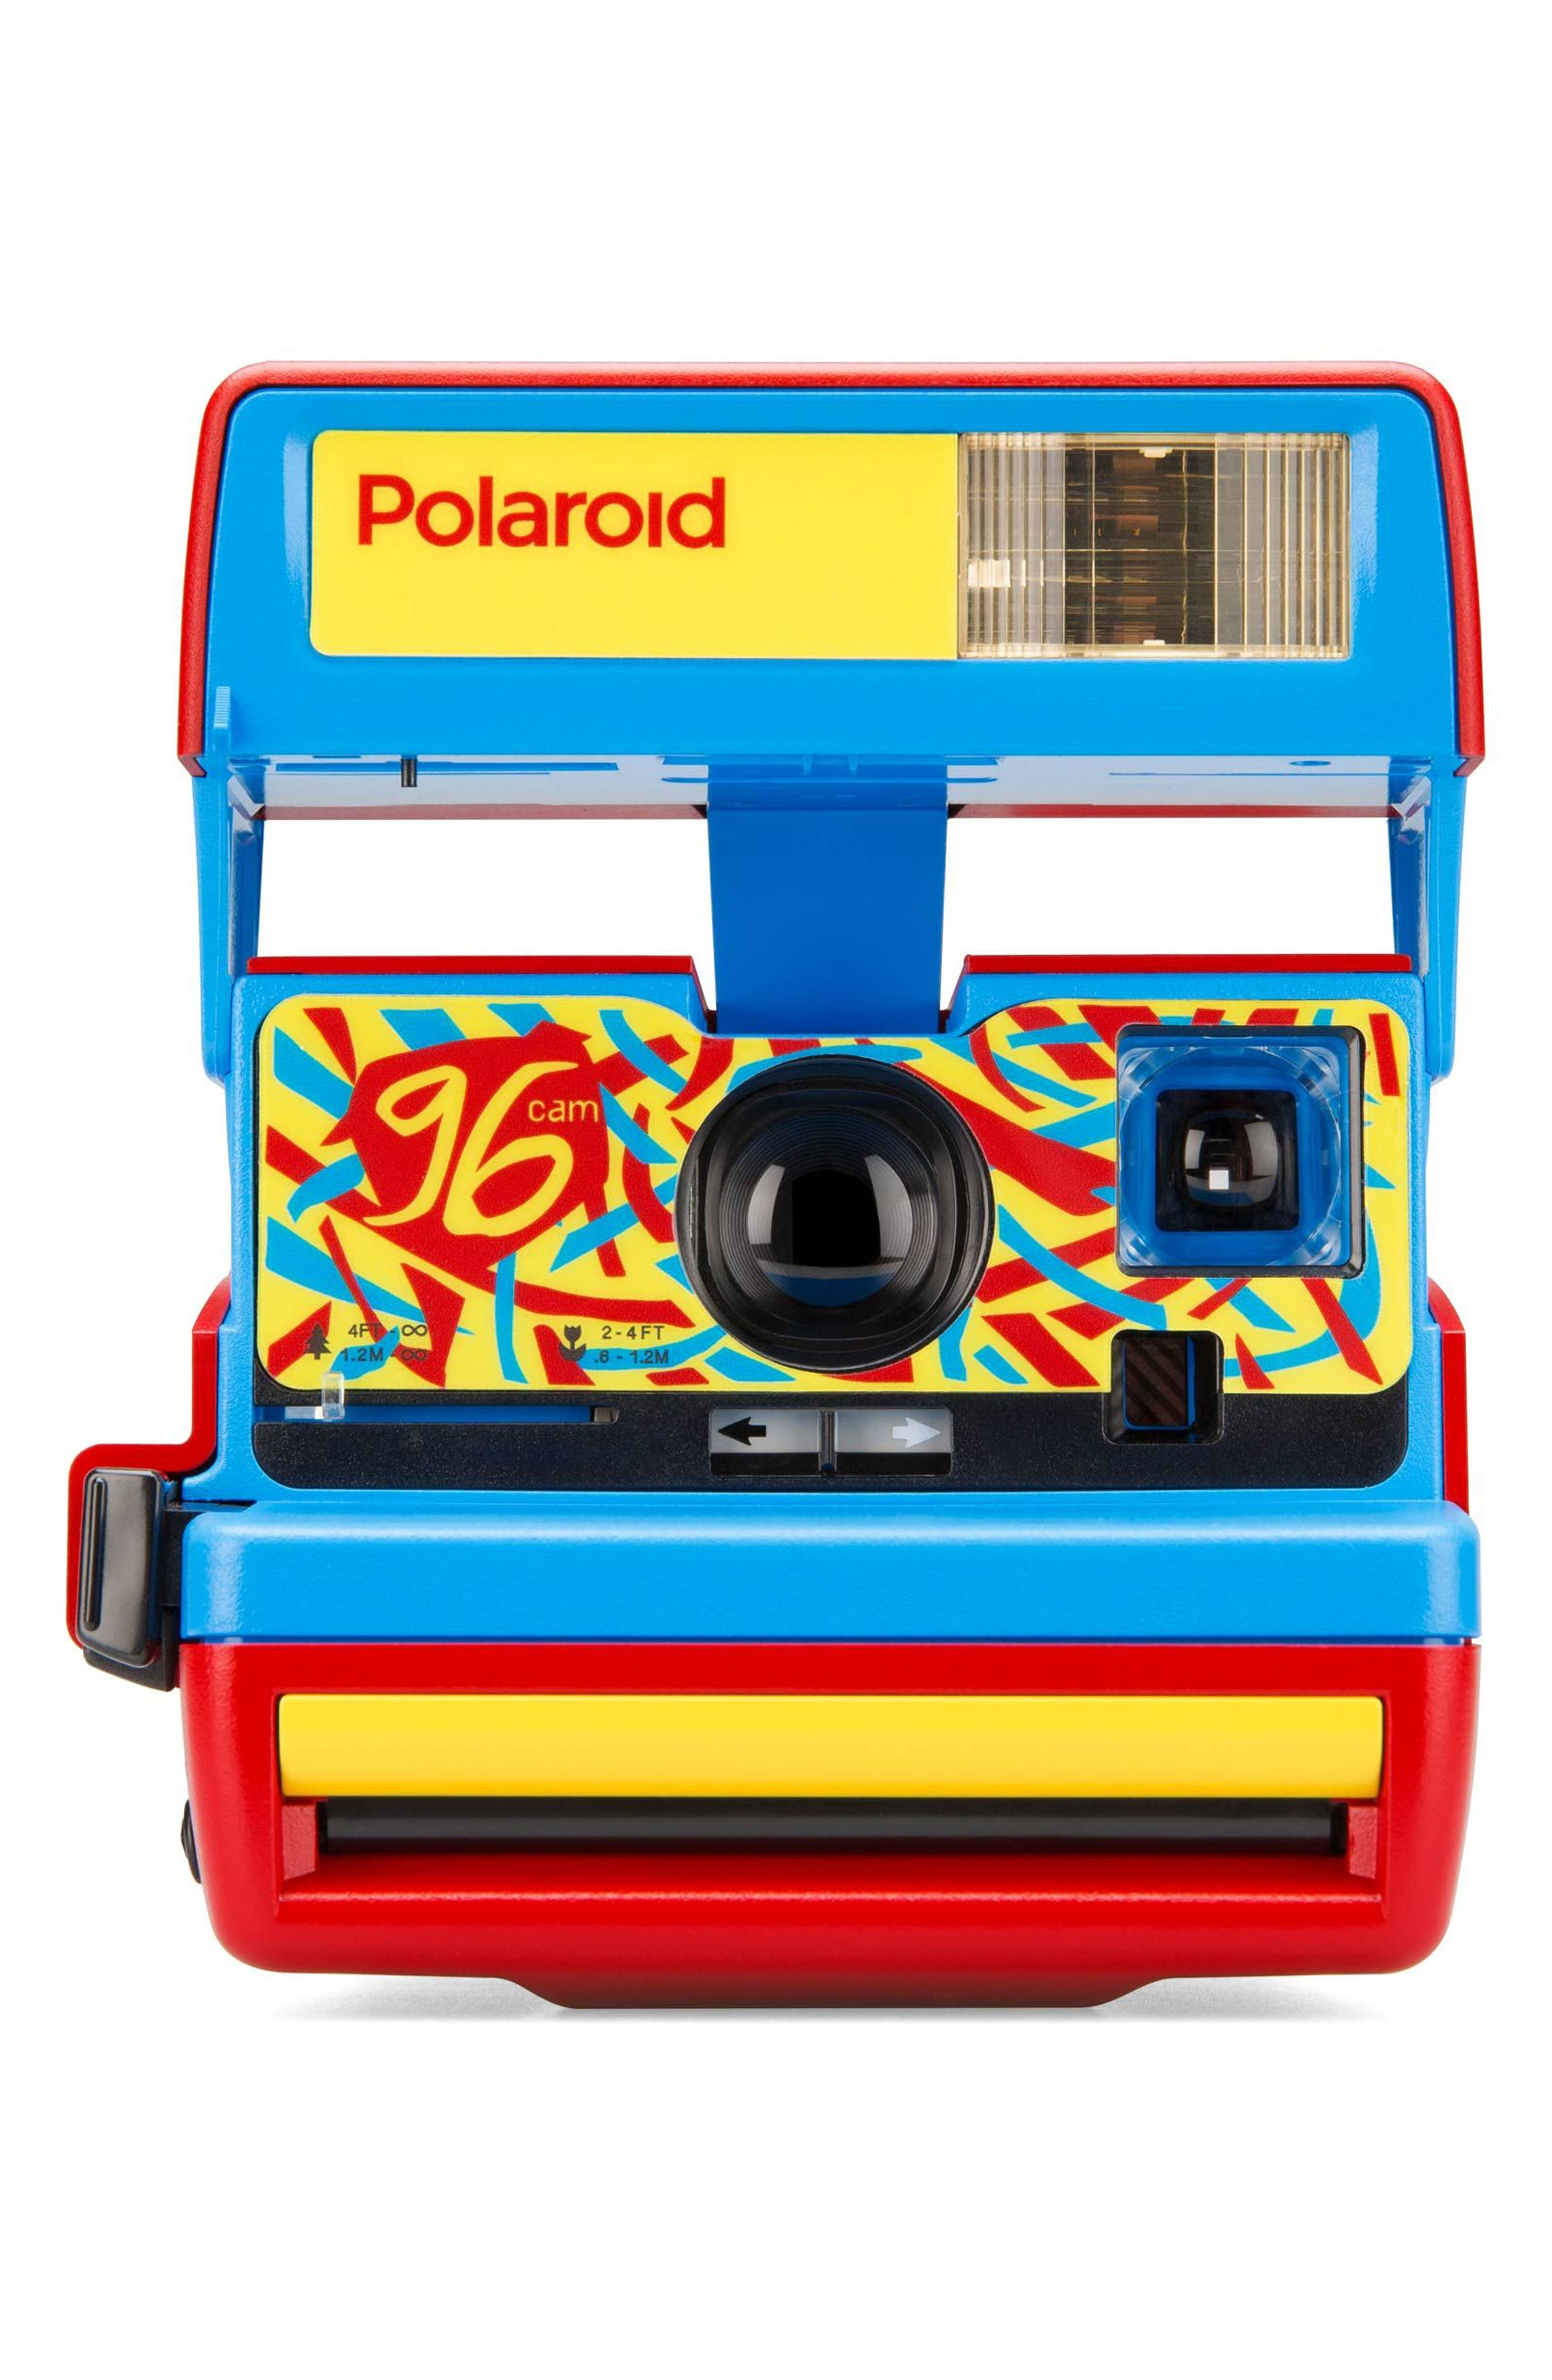 Impossible Project Polaroid 600 96 Cam Instant Camera,                             Main thumbnail 1, color,                             RED